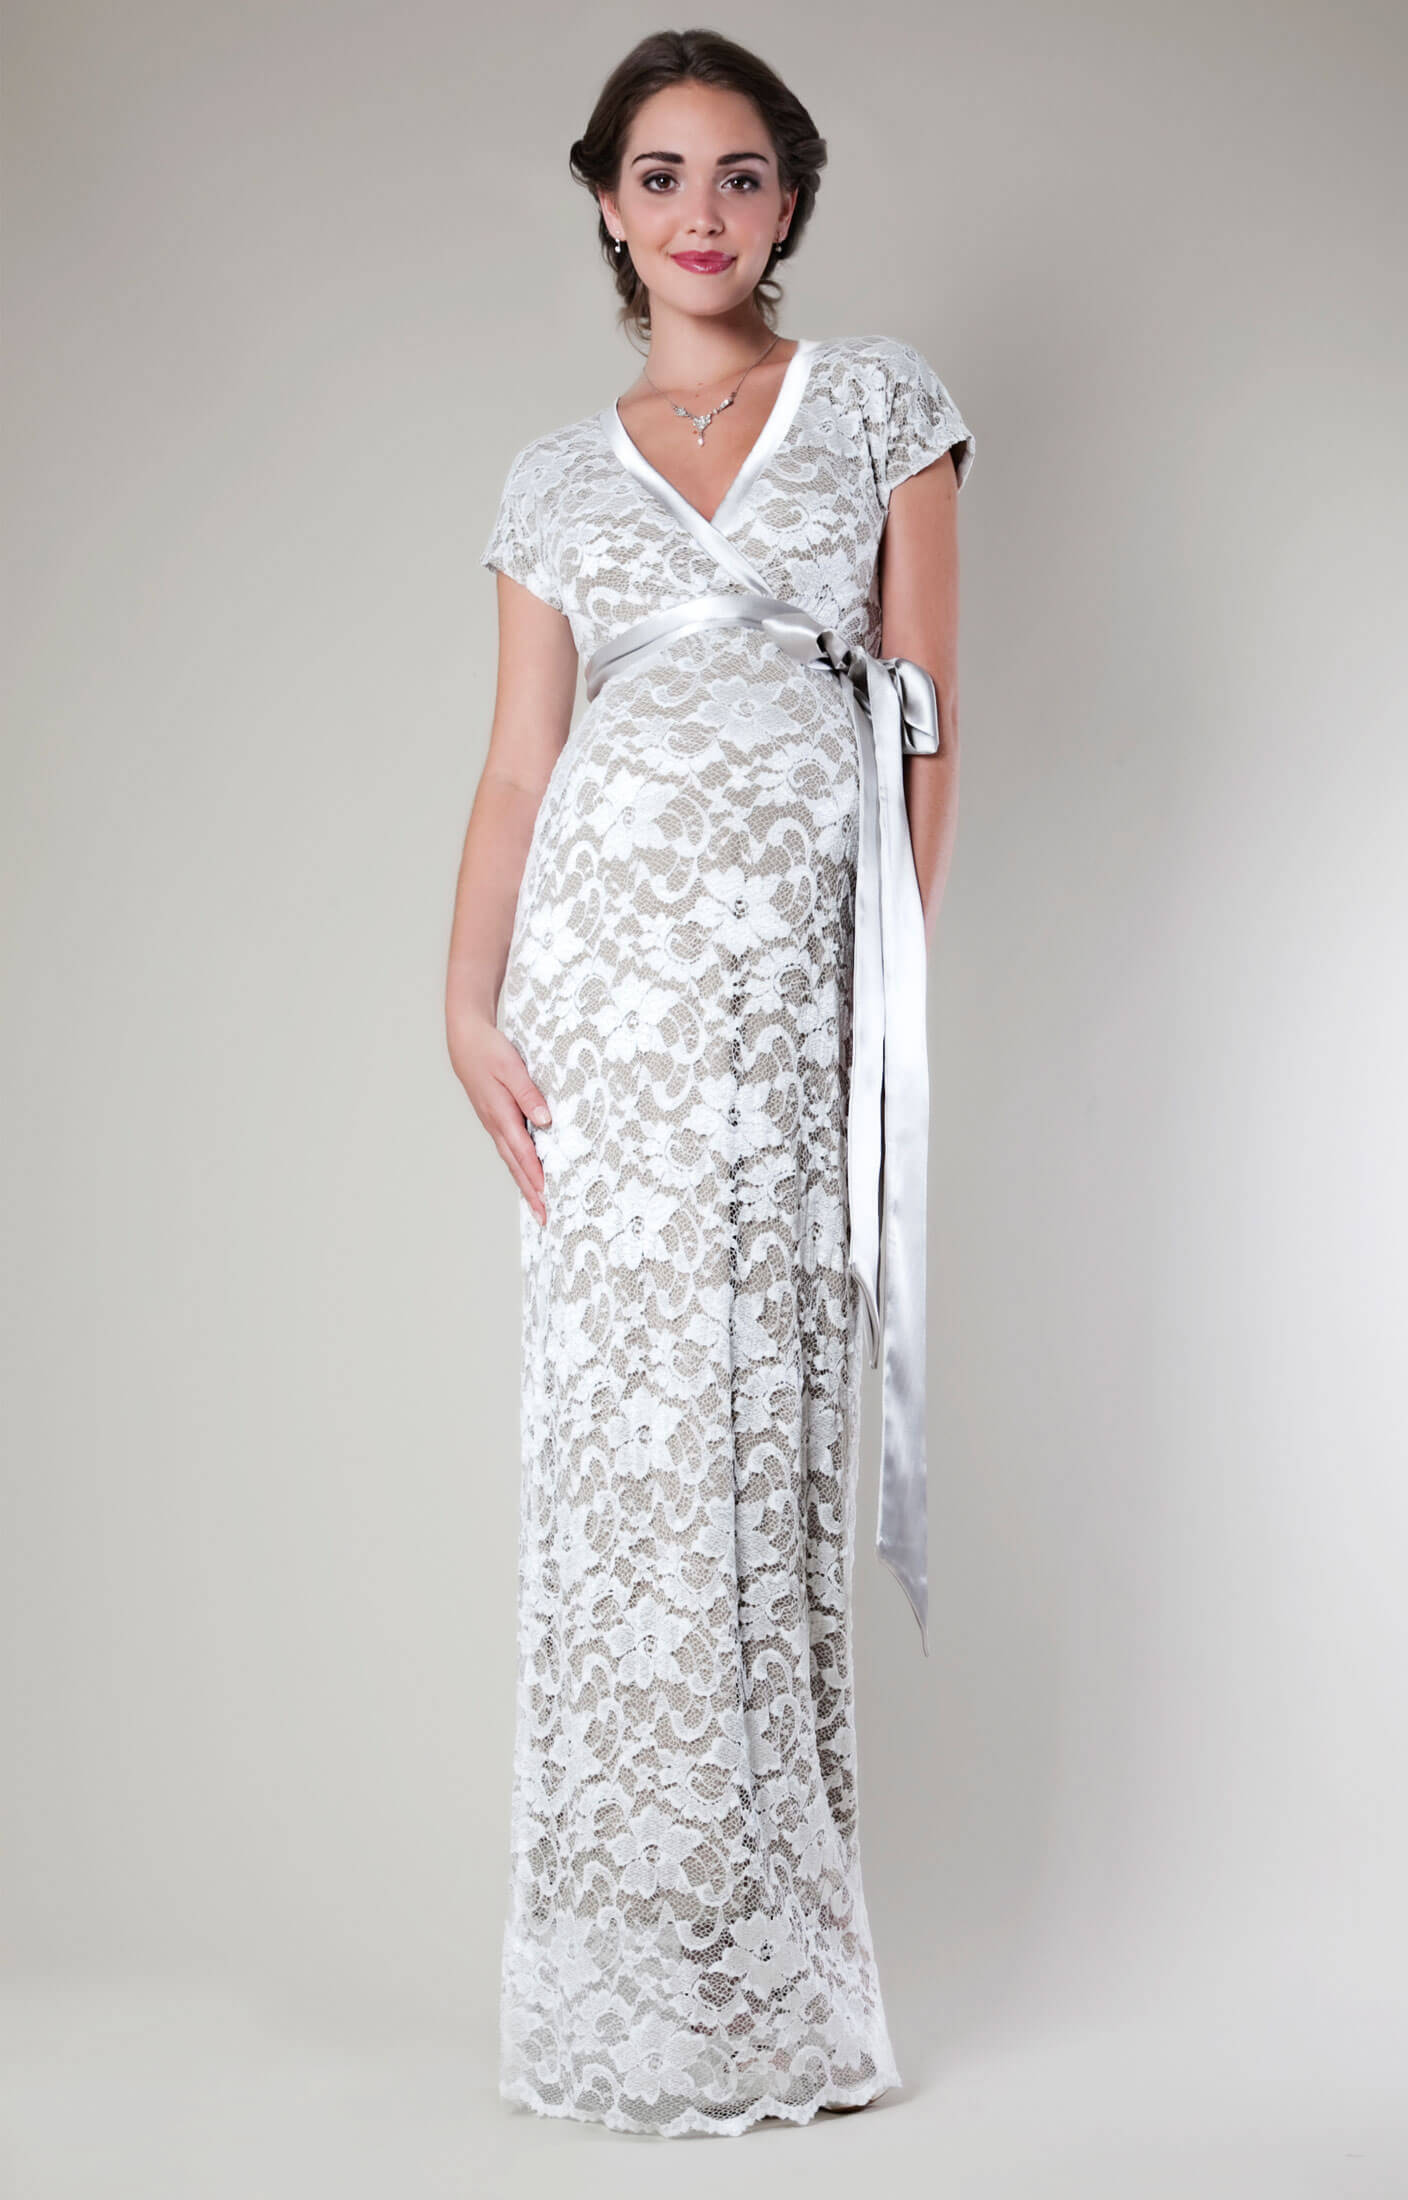 grace lace maternity dress long ivory maternity wedding